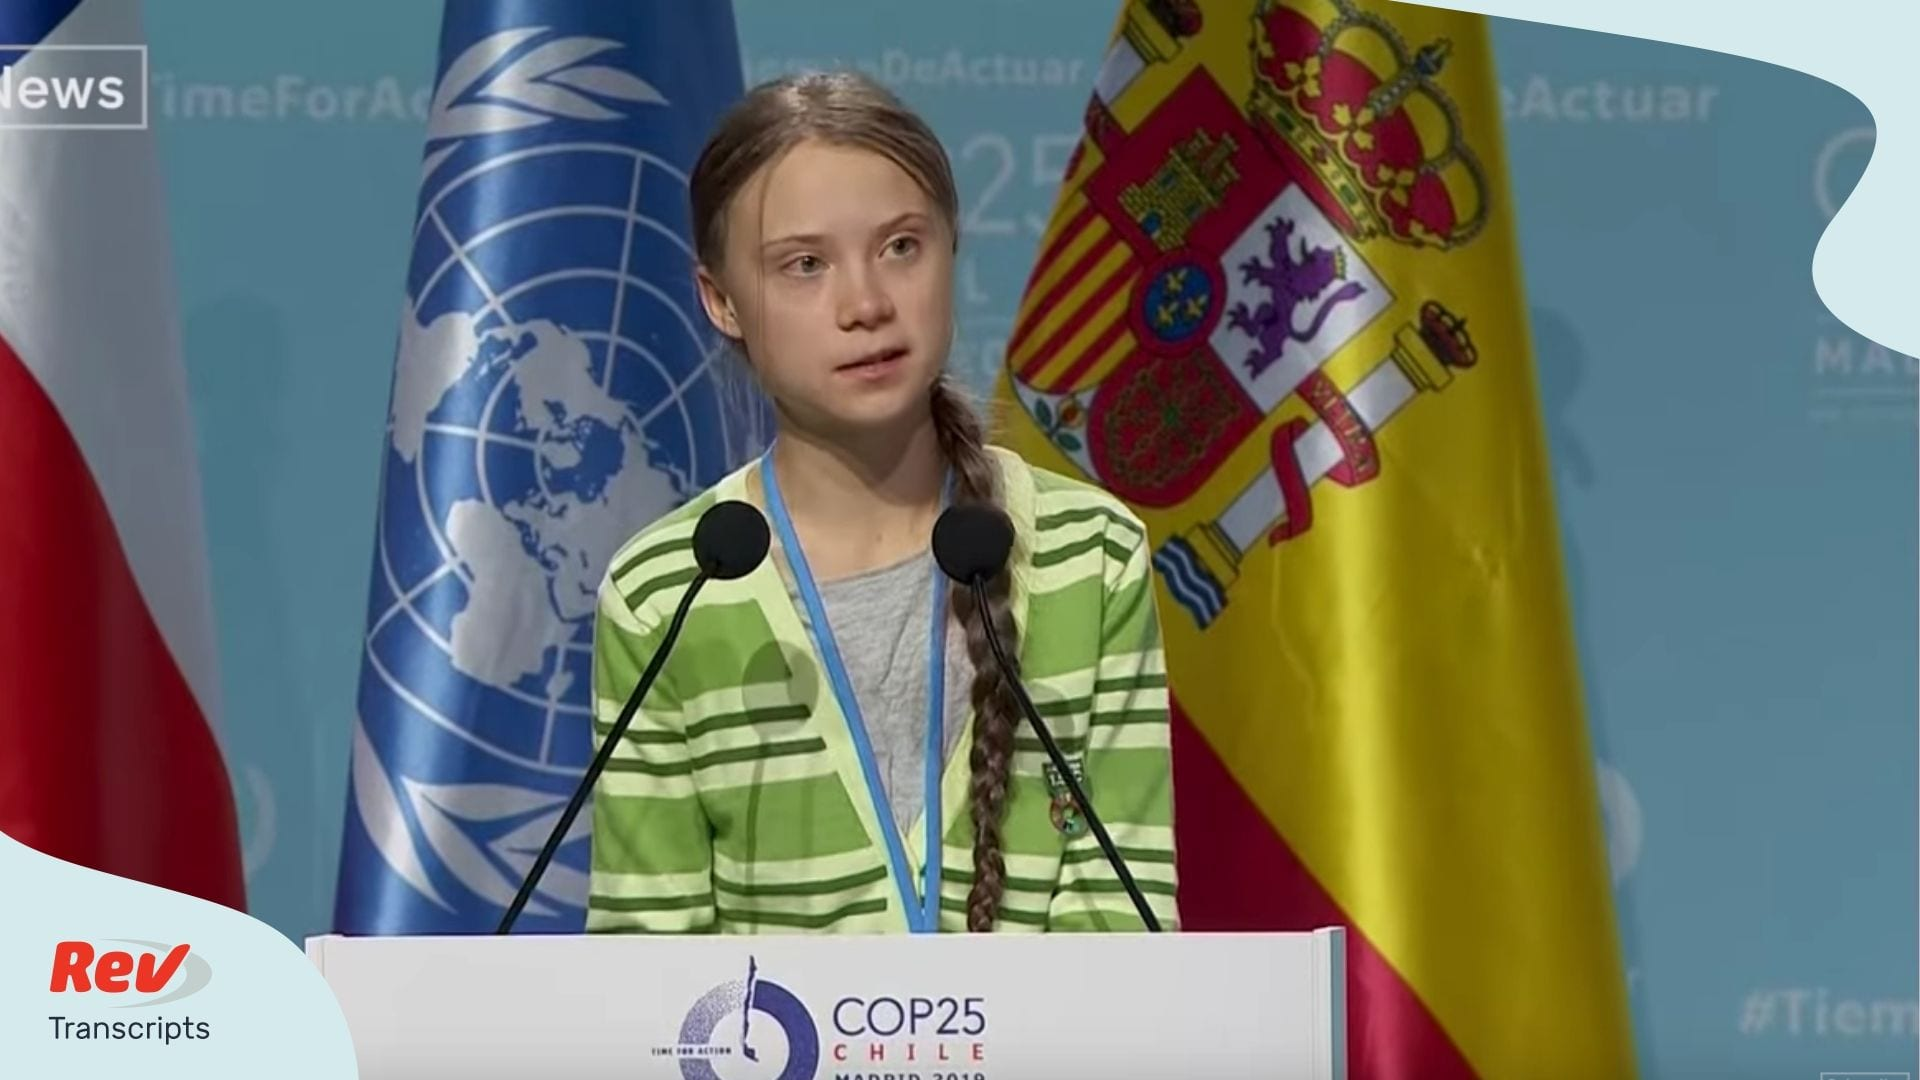 Greta Thunberg UN Climate Change Conference Speech Transcript